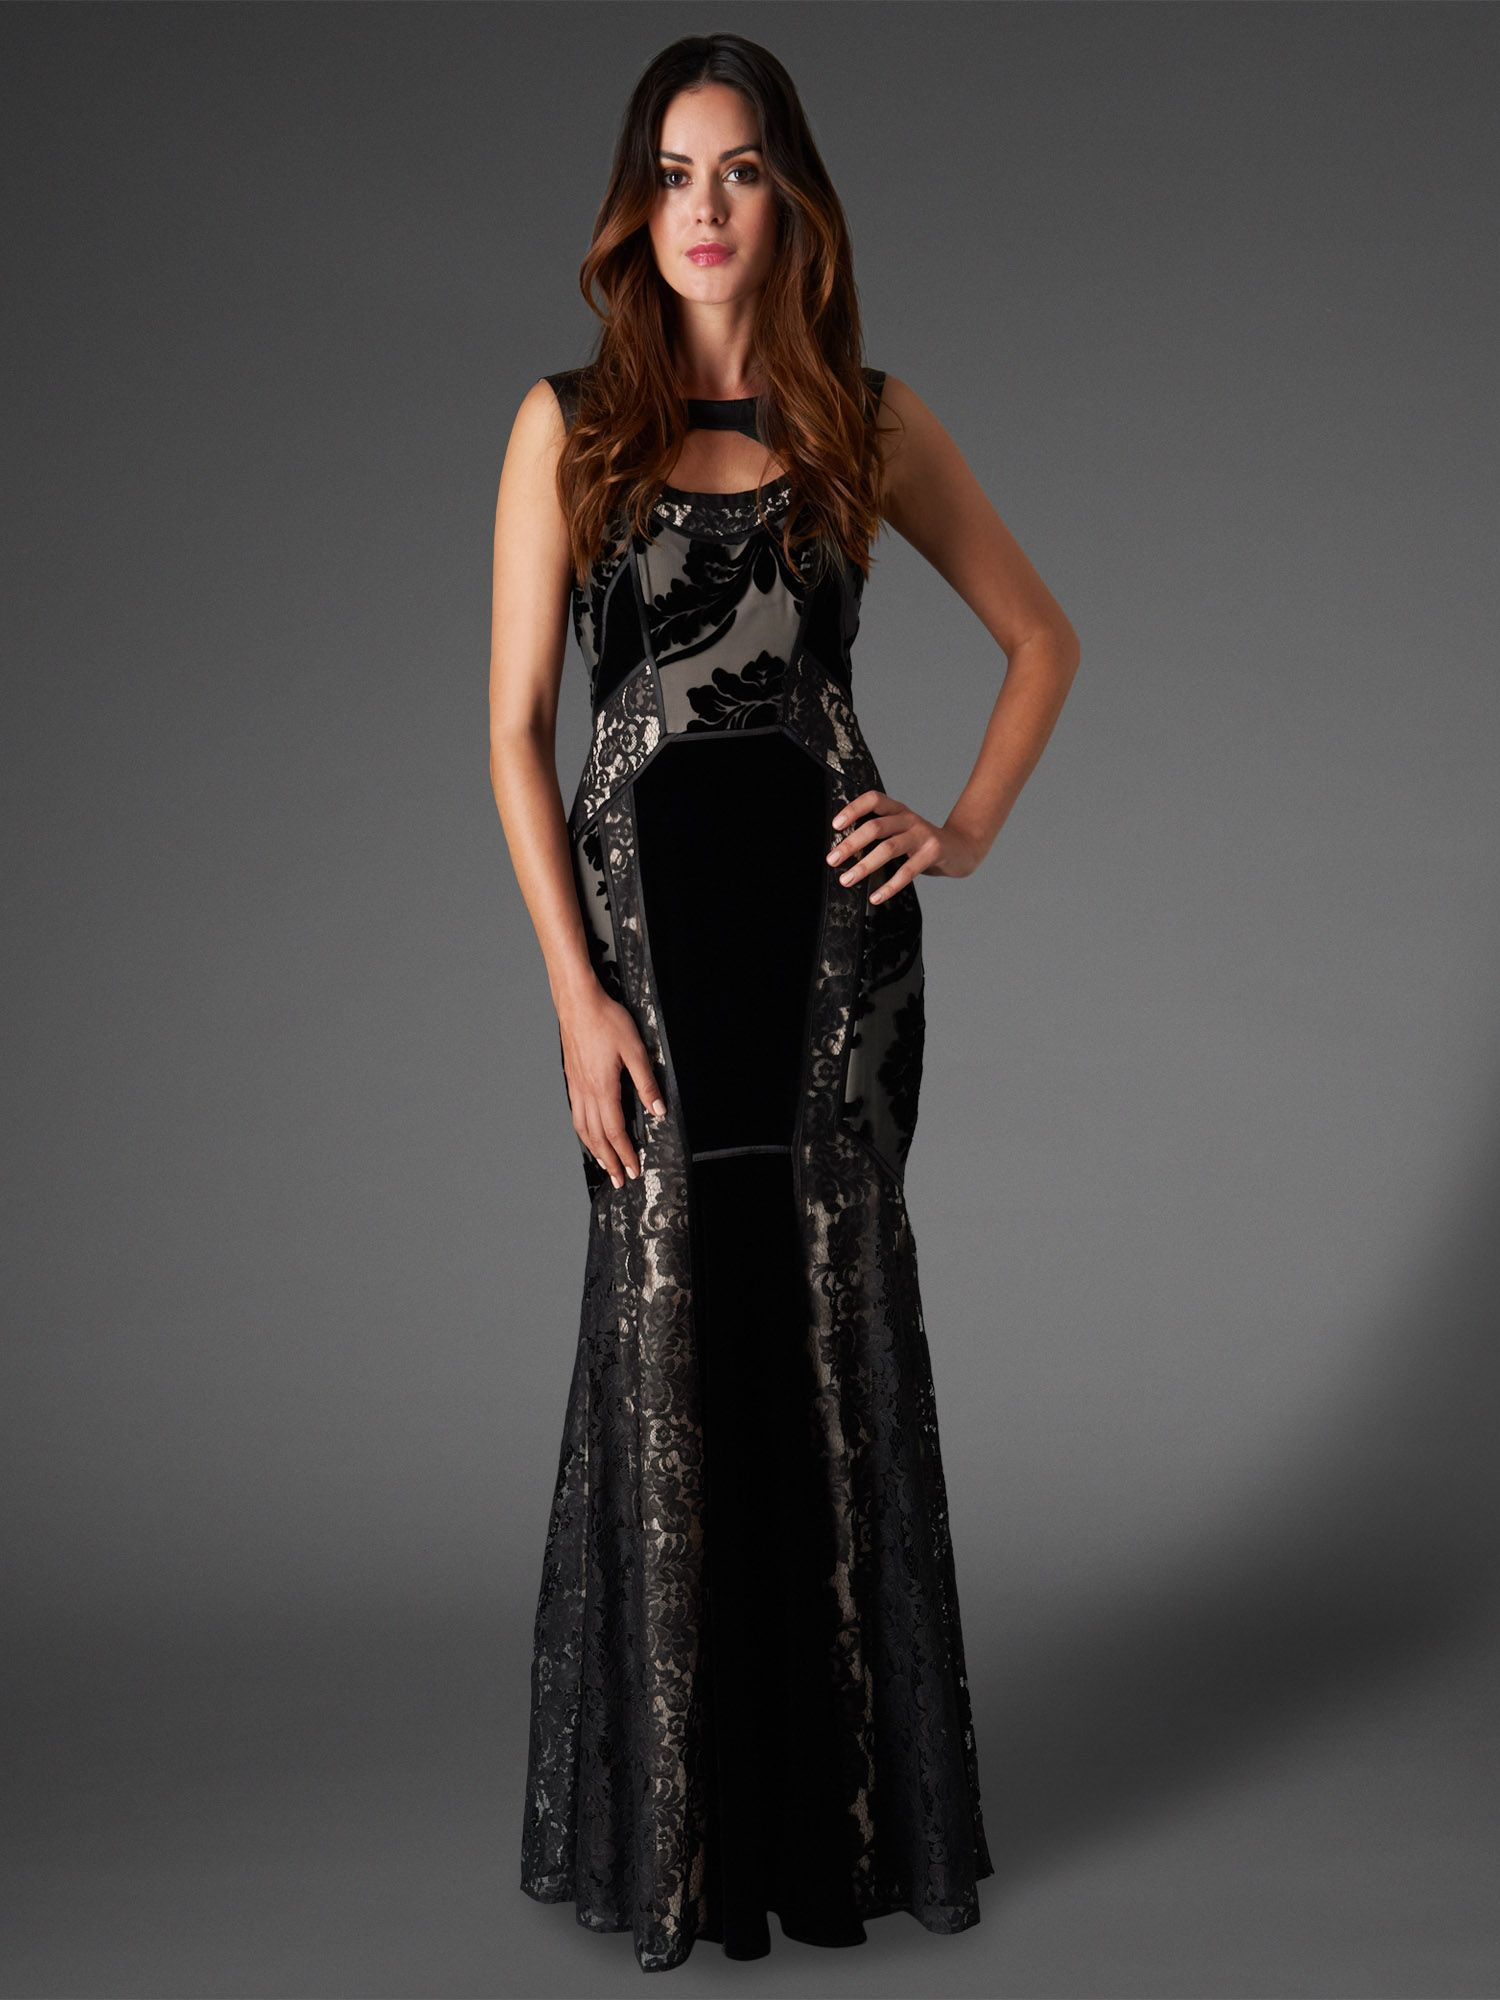 Dulciana full length dress